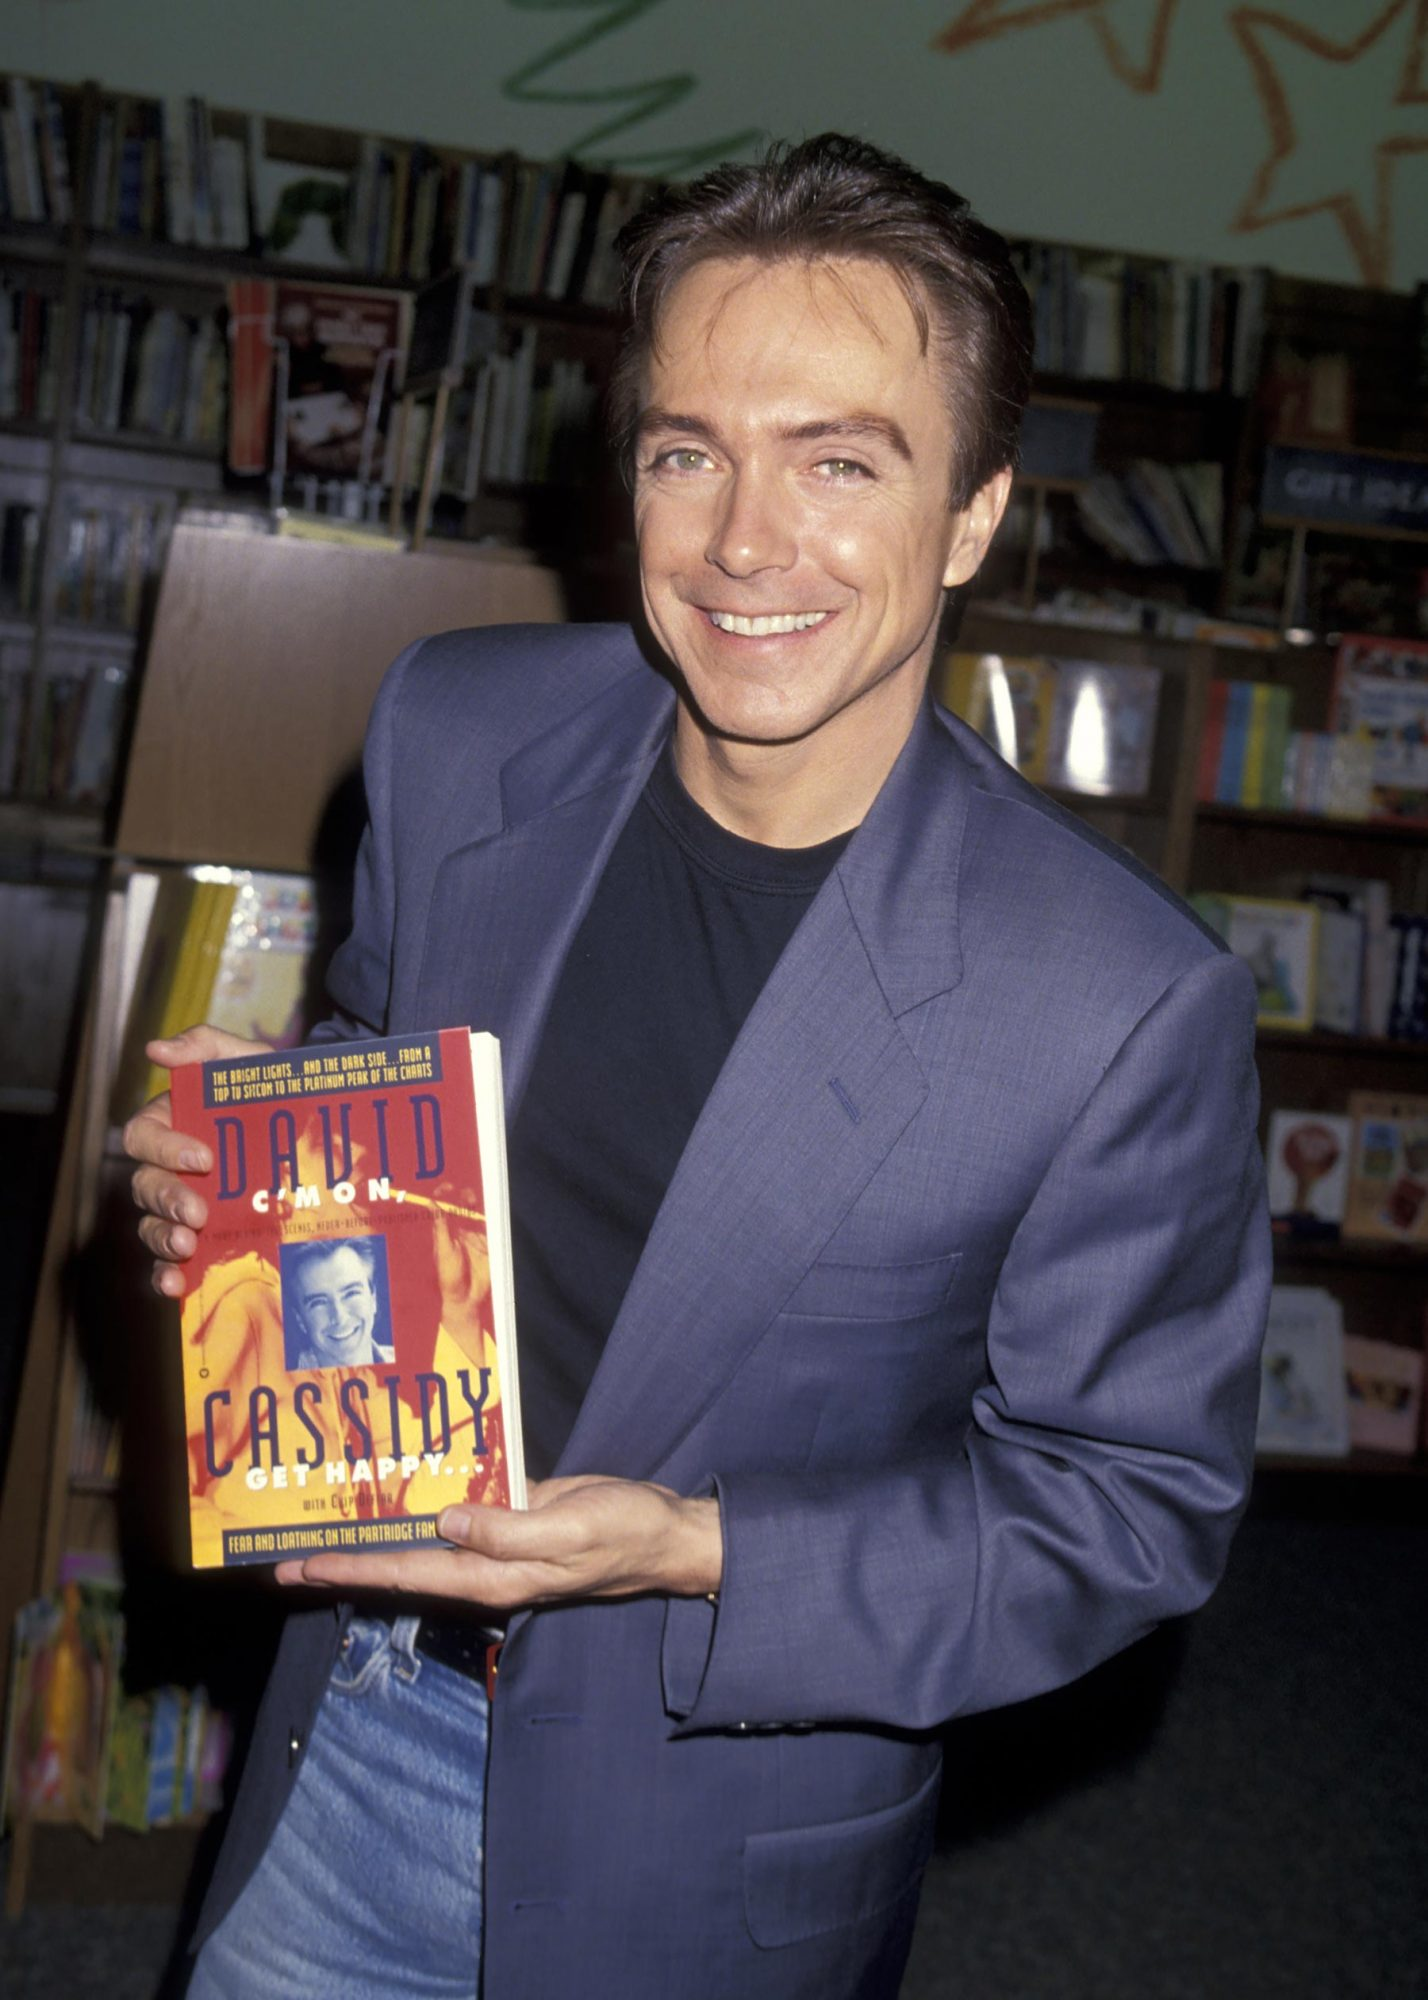 """David Cassidy In Store Appearance To Promote New Book """"C'mon Get Happy"""""""